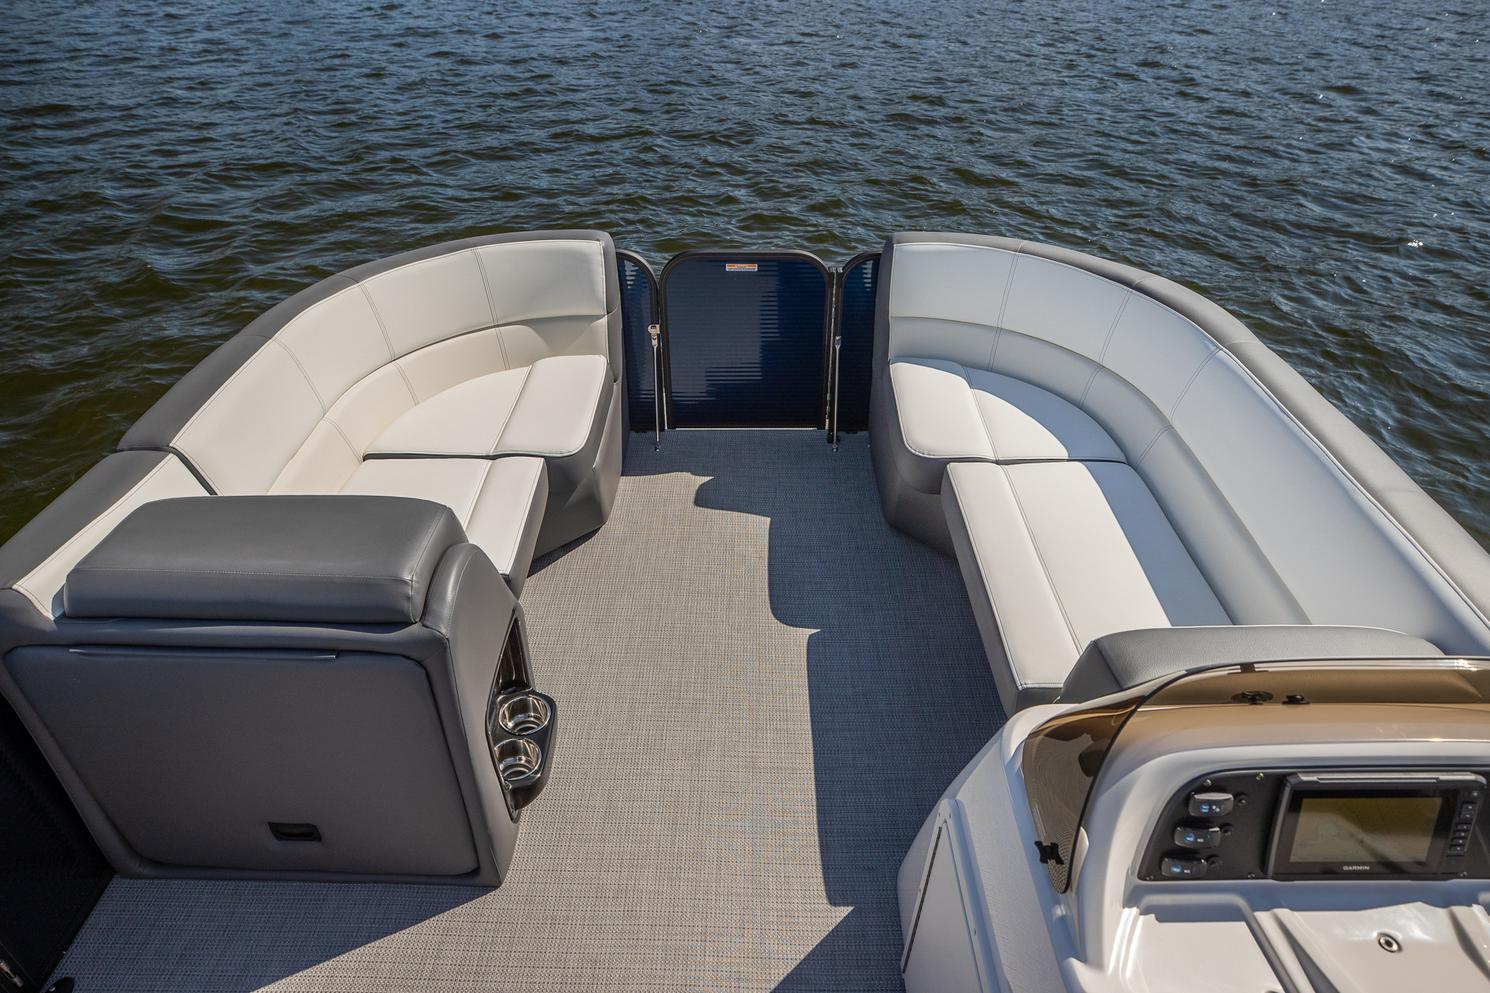 2021 Manitou Pontoon boat for sale, model of the boat is AURORA & Image # 4 of 11